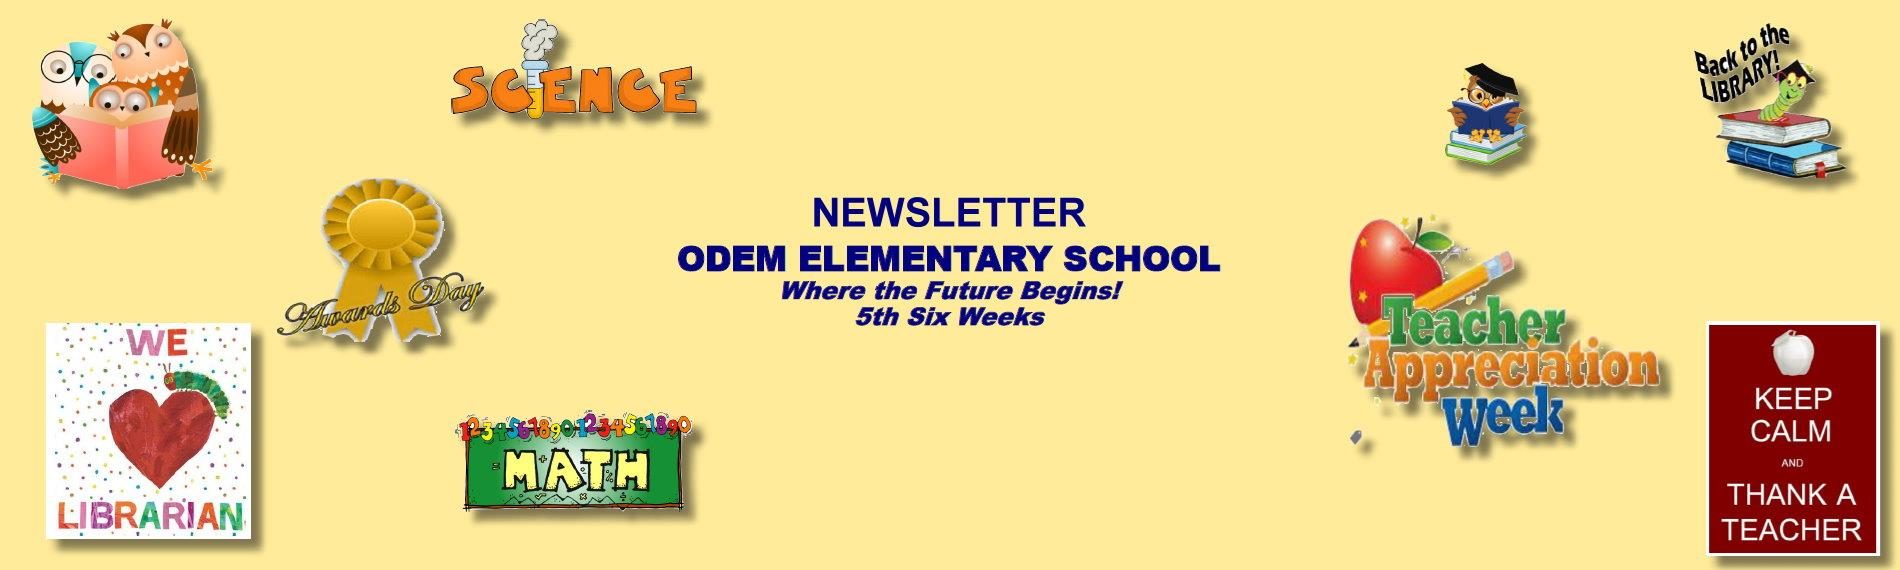 OES Newsletter - 5th SW 2021